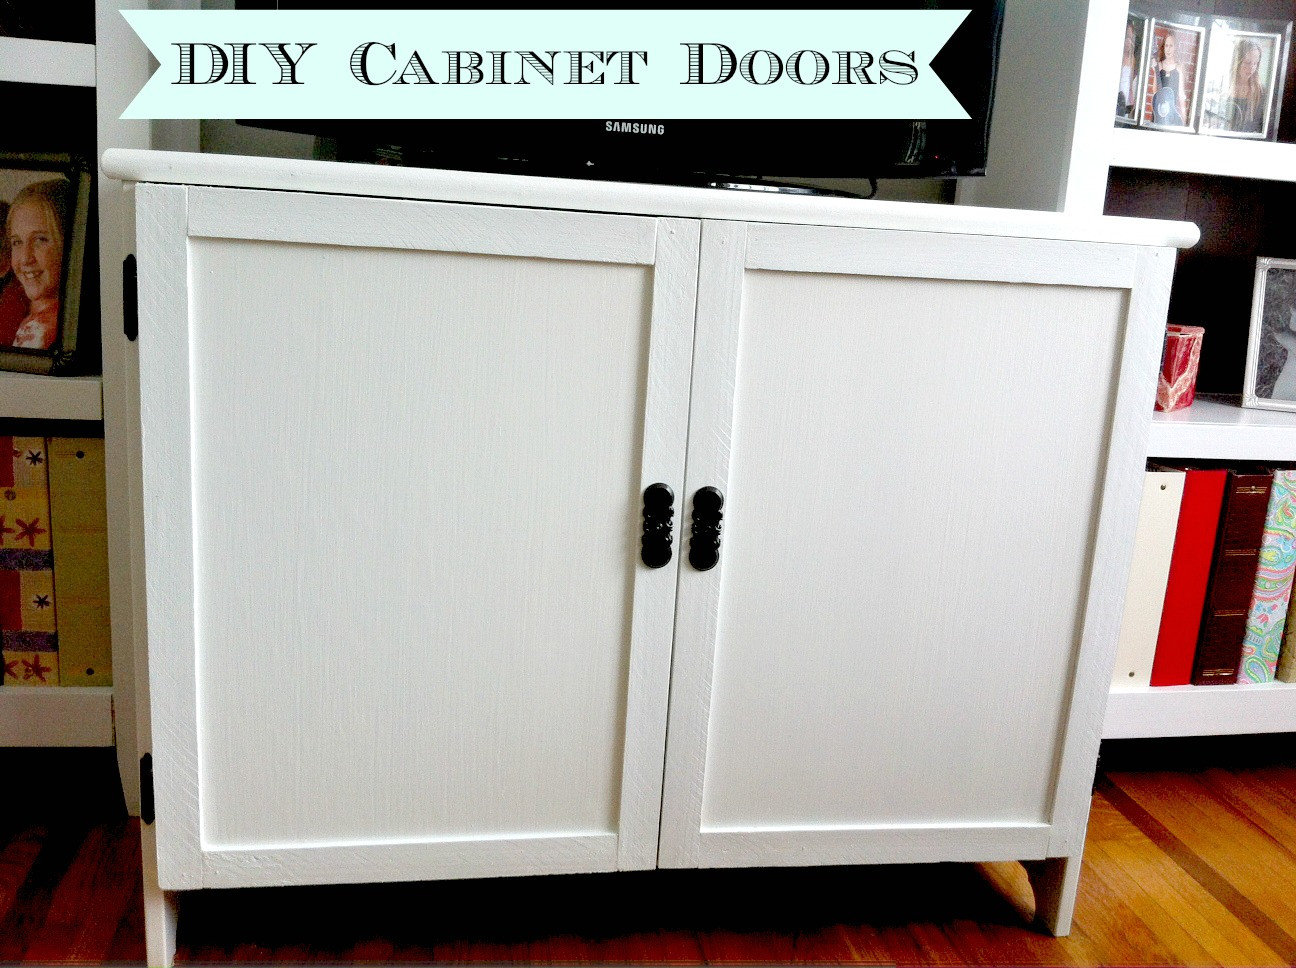 Best ideas about DIY Cabinet Doors . Save or Pin DIY Cabinet Doors Mom in Music City Now.